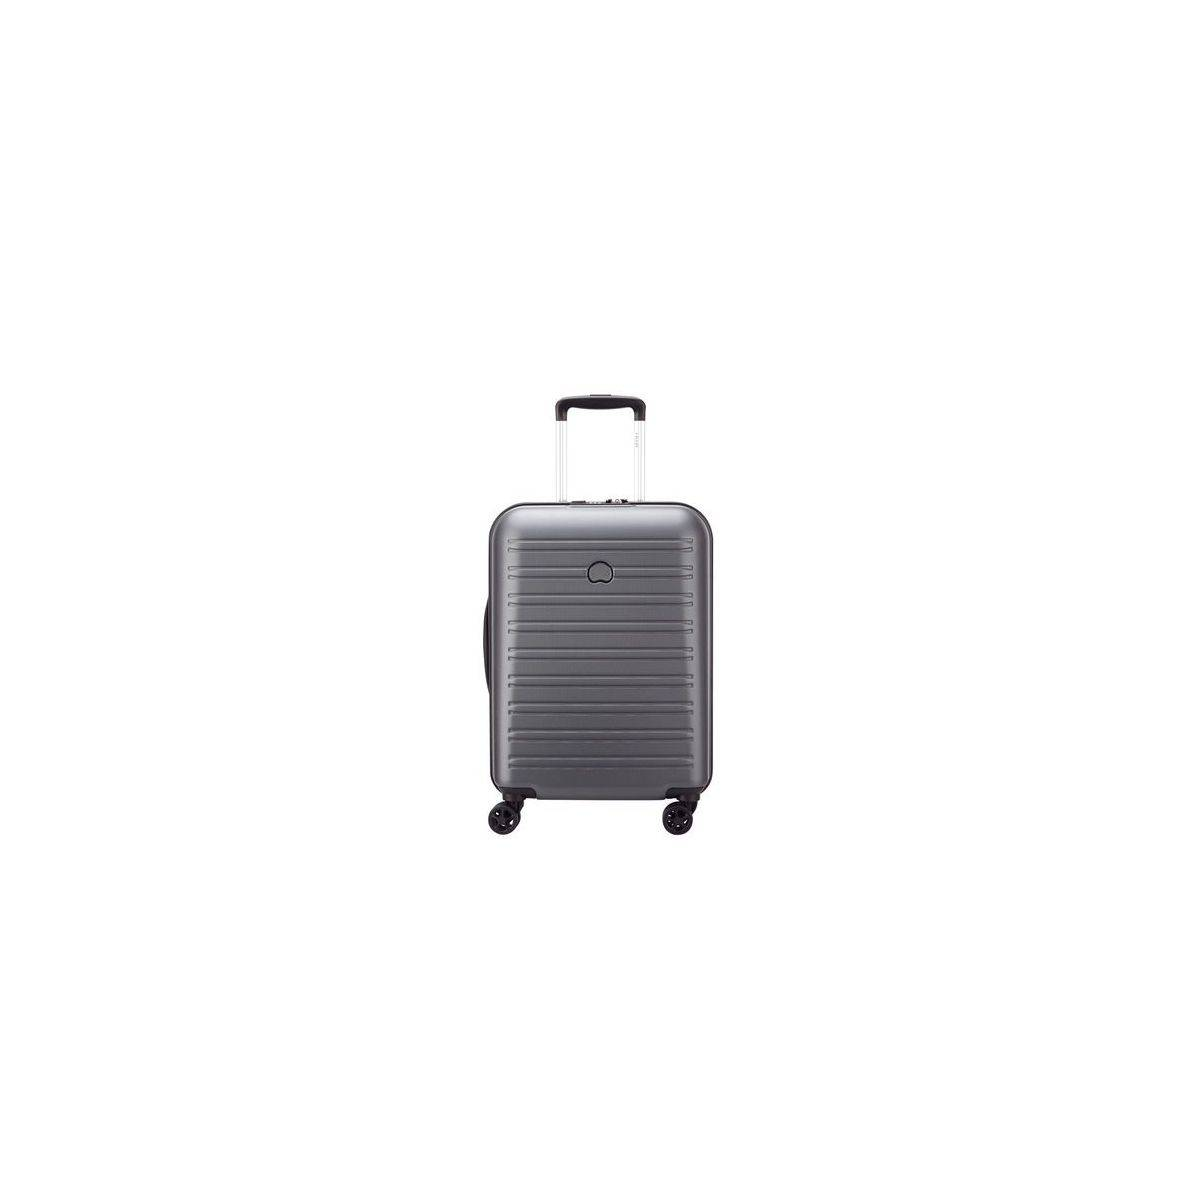 Valise Cabine 2 55cm Roues Litres 36 02058803 Rigide Delsey Taille 4 Segur zMVSUp